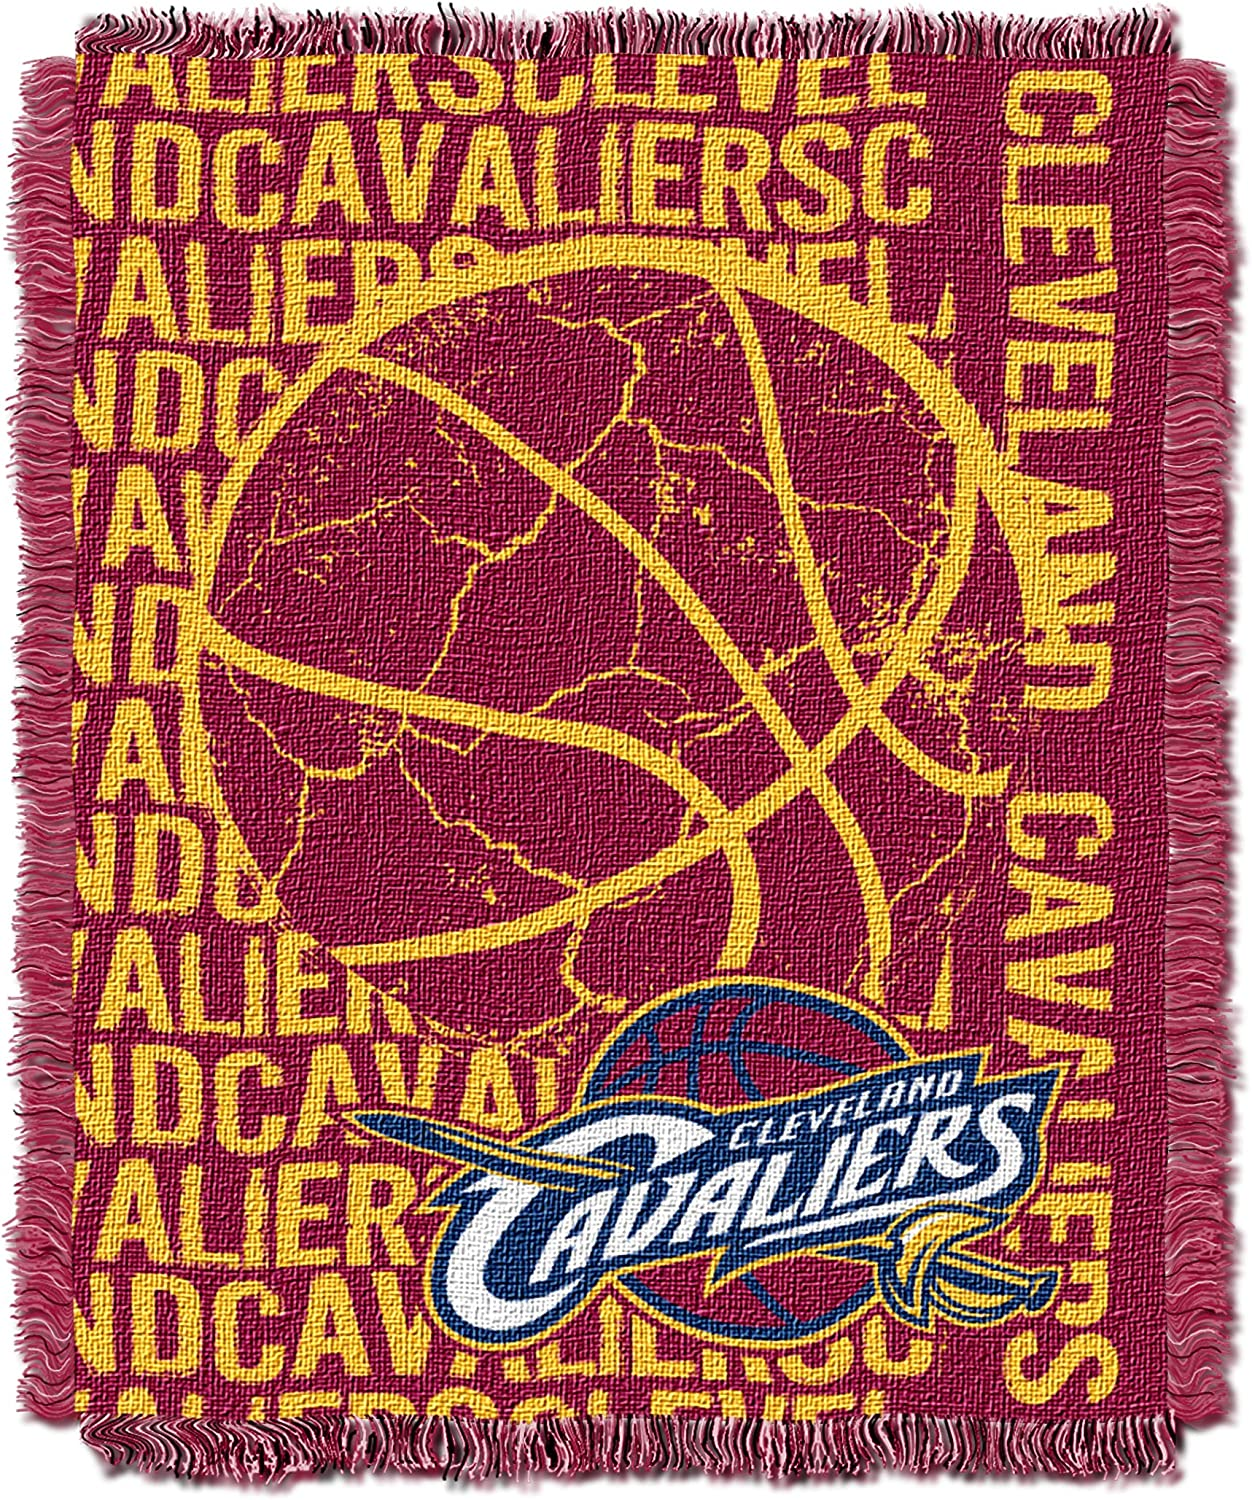 Officially Licensed NBA Double Play Jacquard Throw Blanket Multi Color 48 x 60